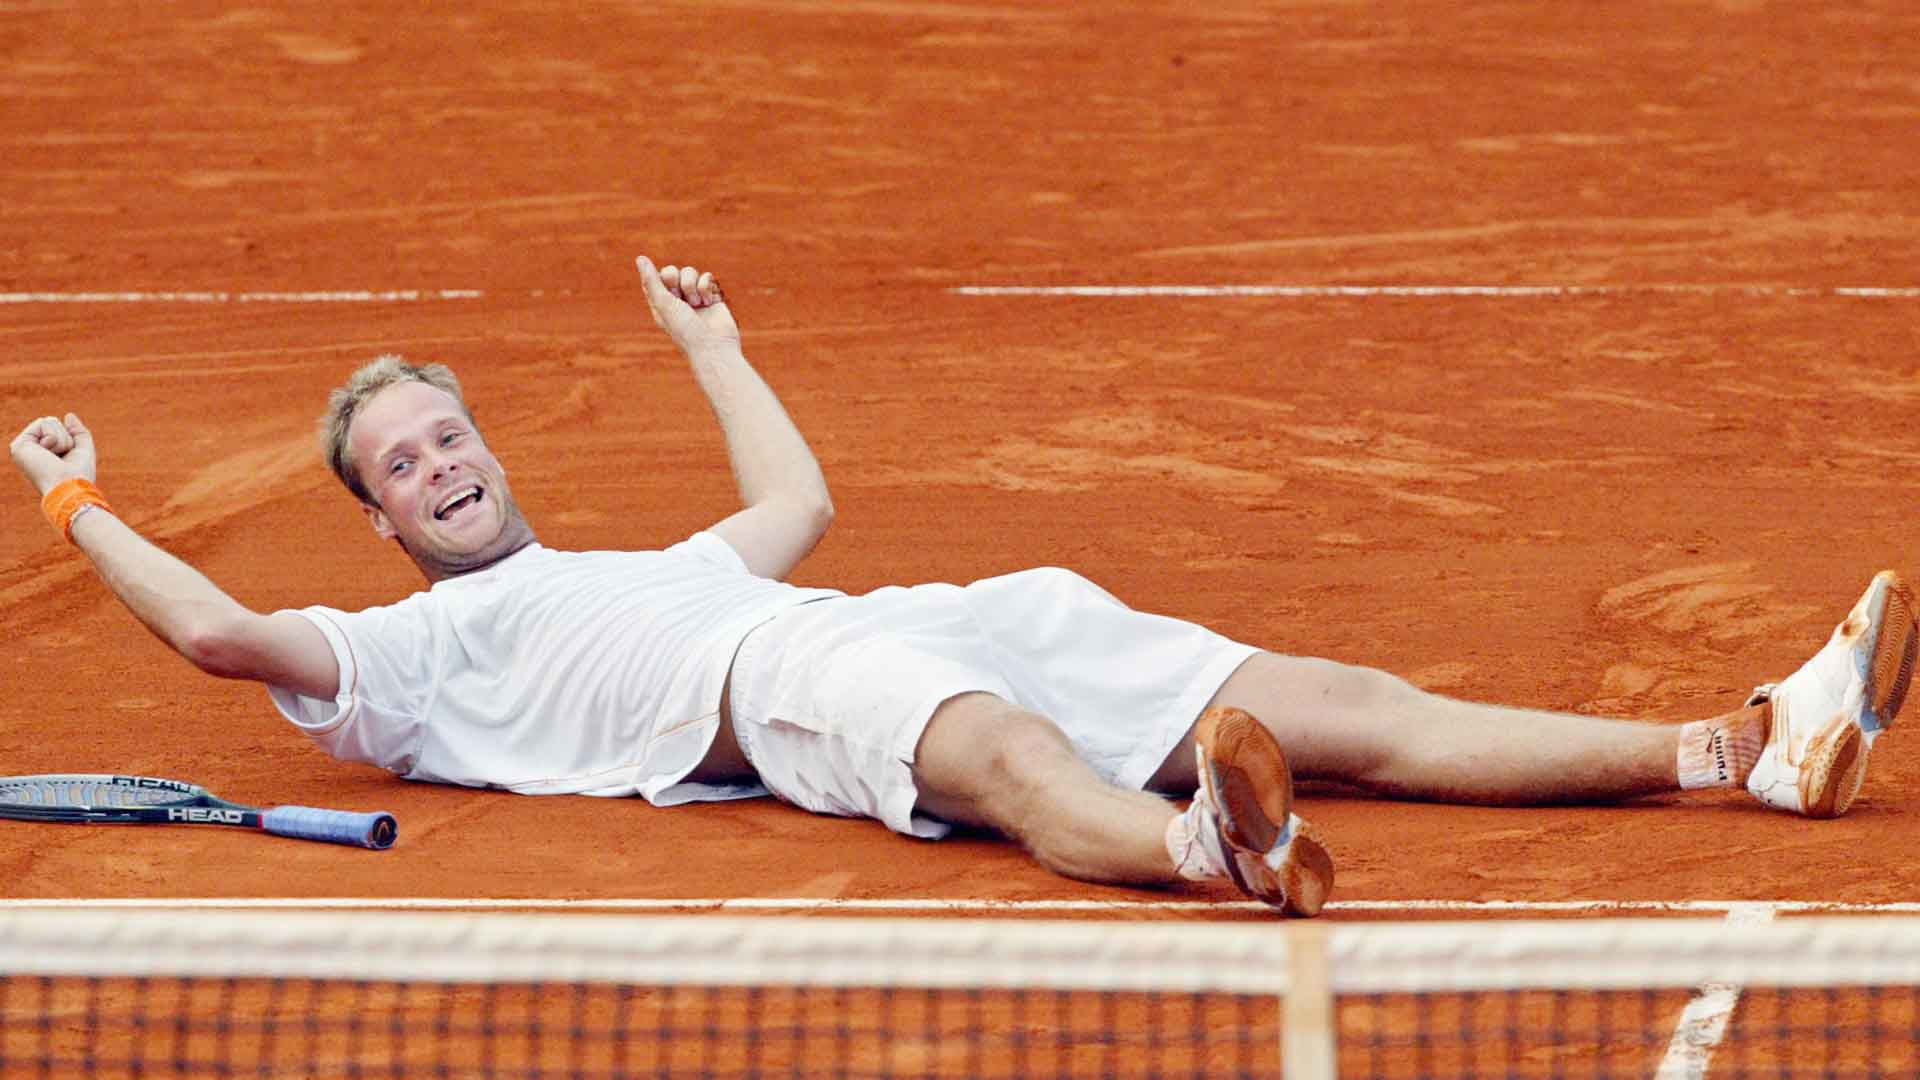 Martin Verkerk landed 27 aces to beat Carlos Moya in five sets at Roland Garros in 2003.